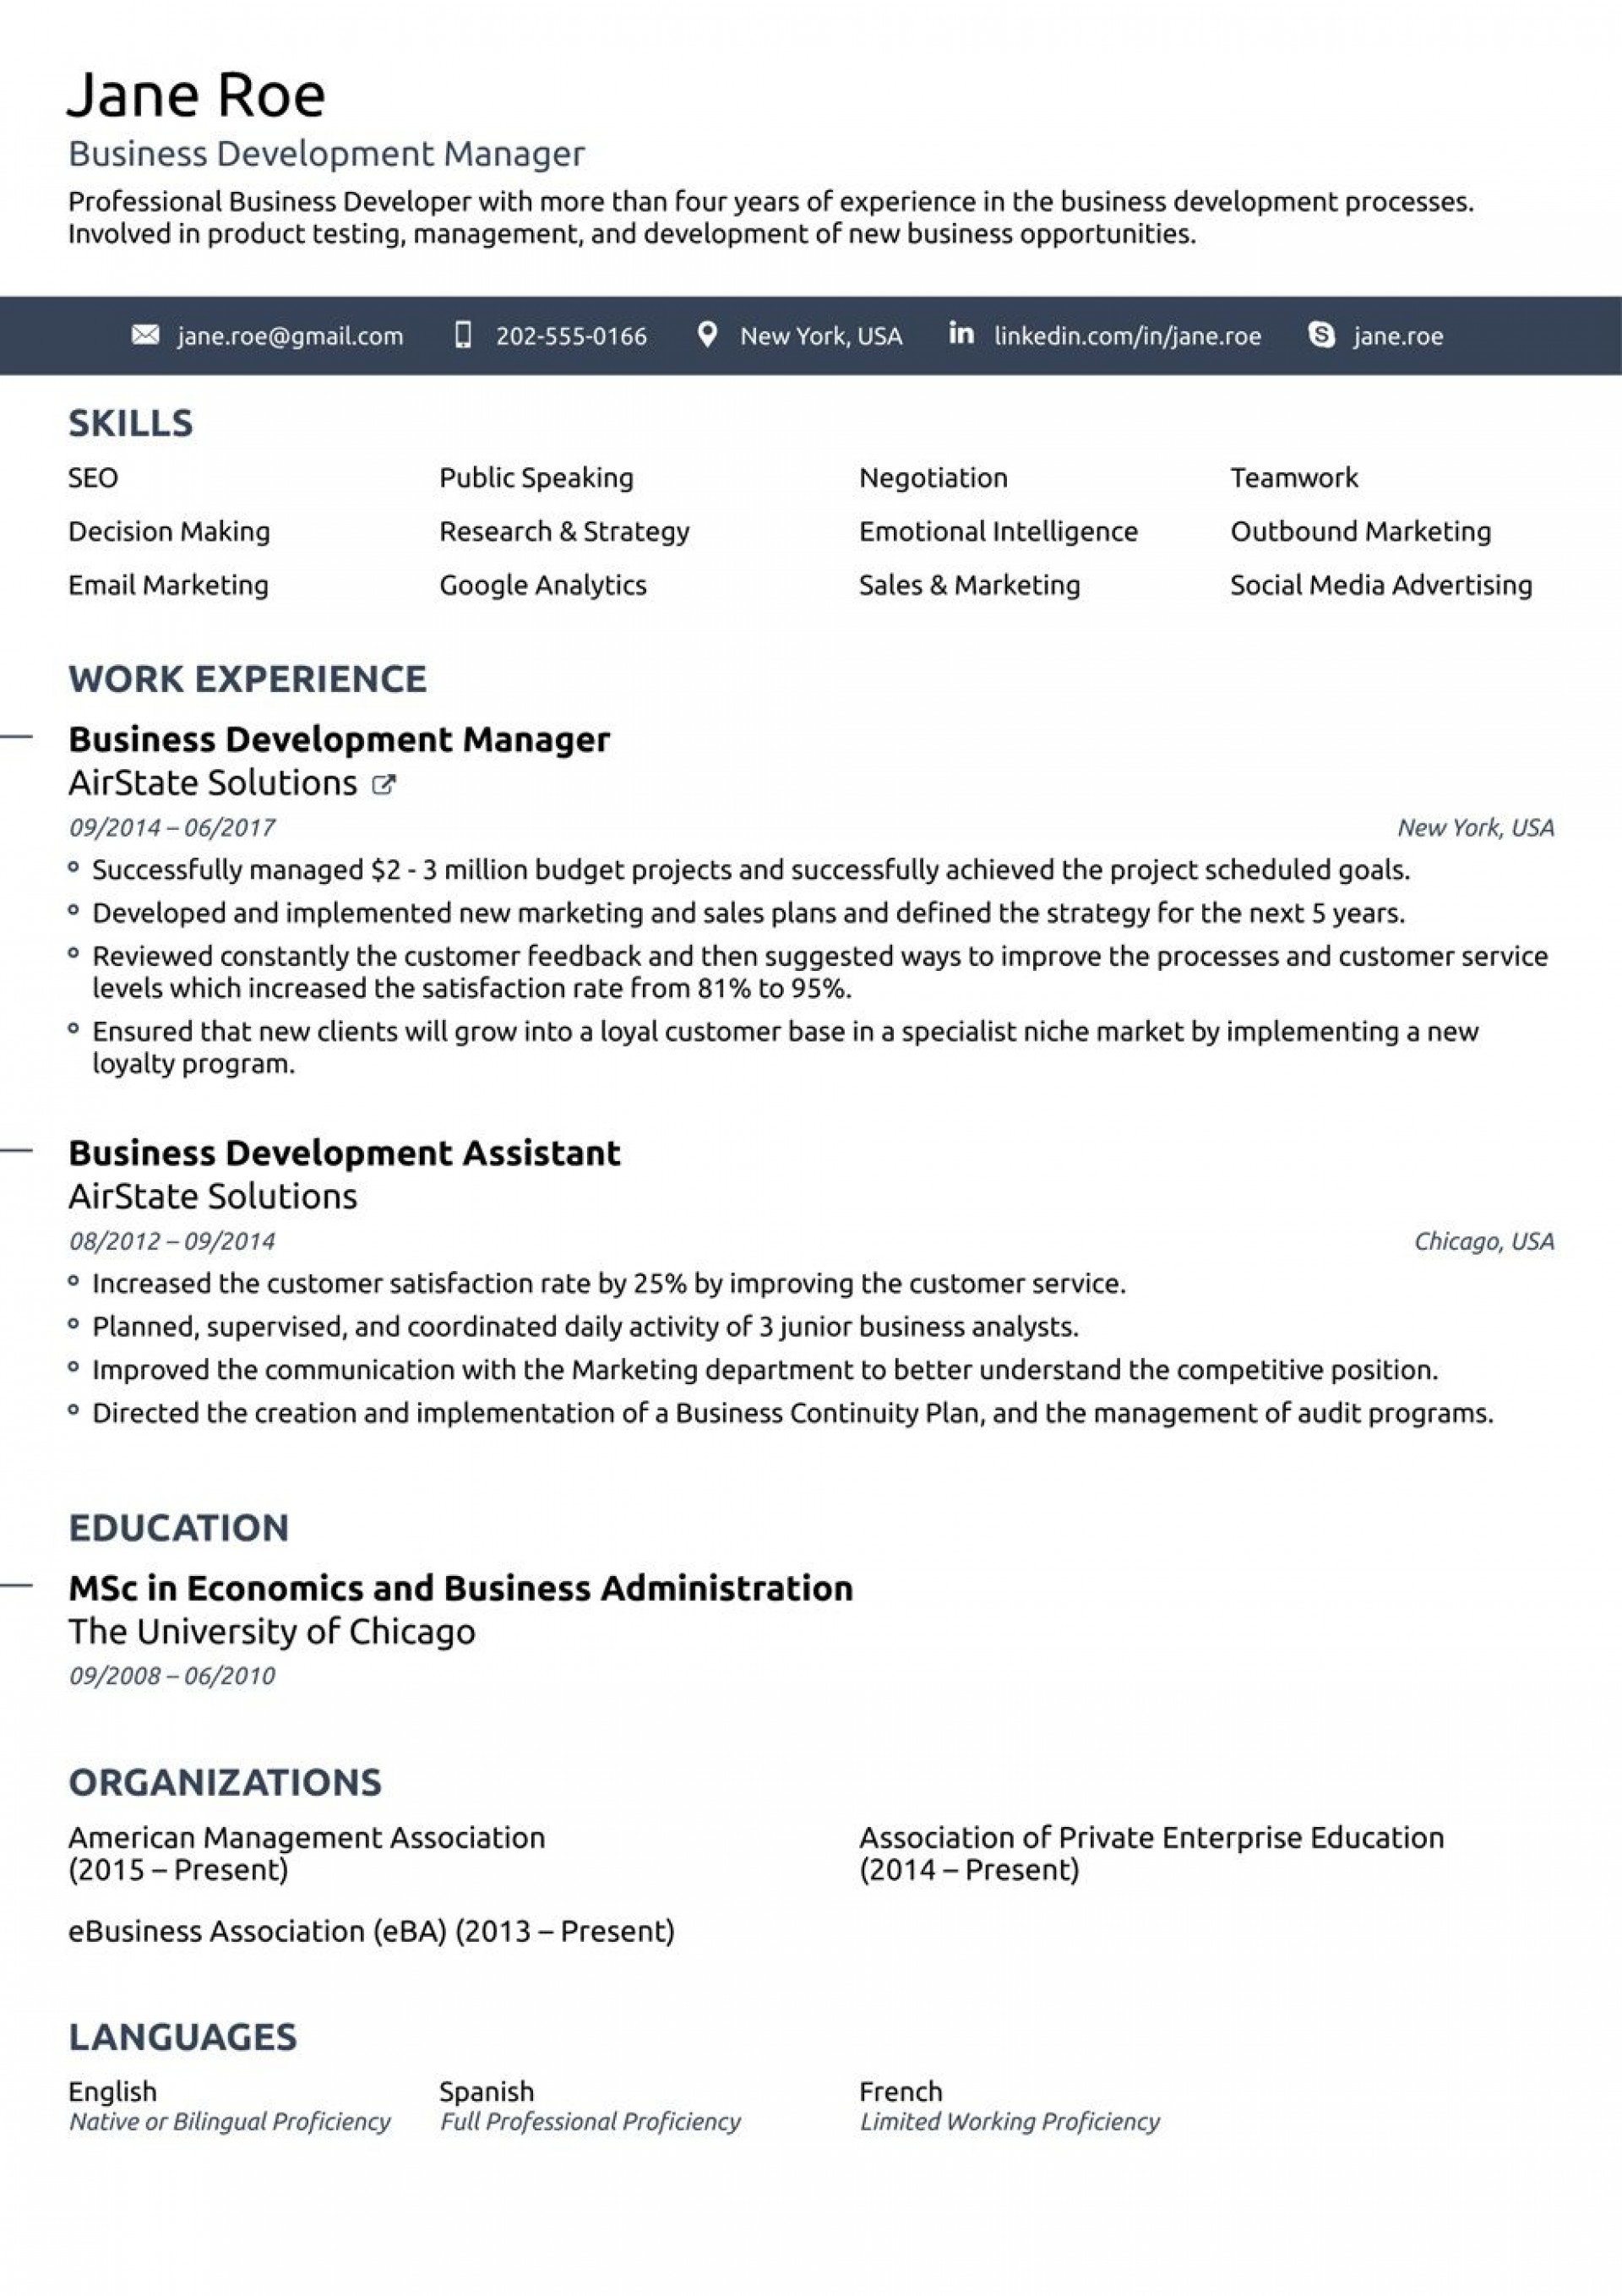 009 Surprising Professional Resume Template Example Highest Quality  Examples Layout Cv Writing Format1920